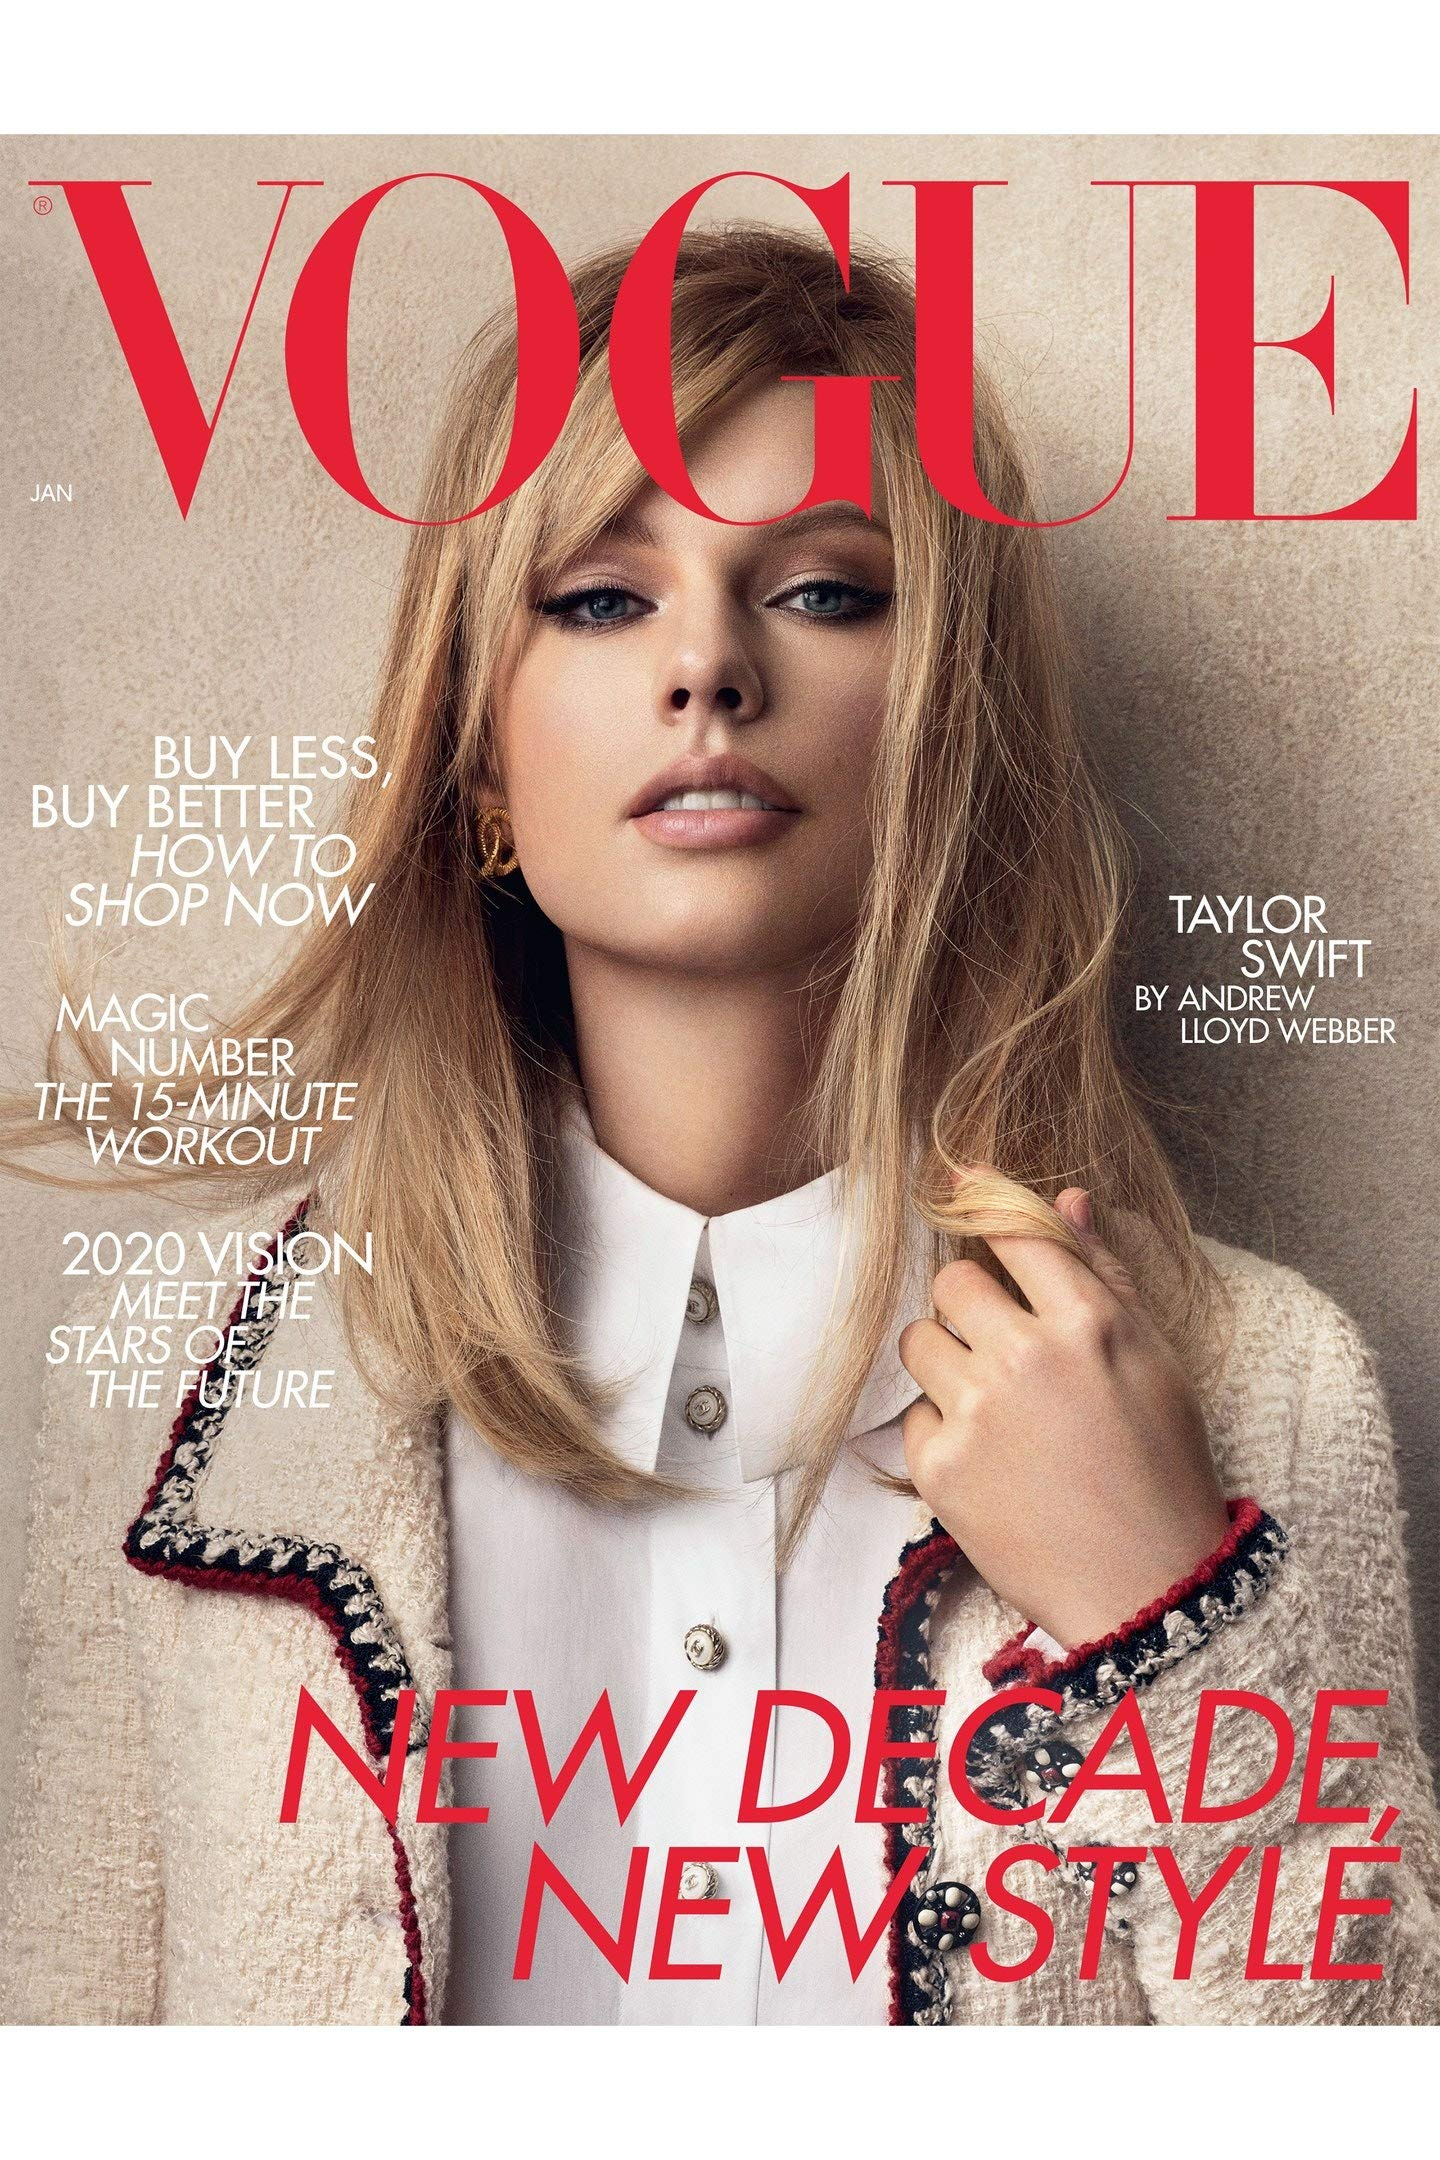 Vogue Uk Magazine January 2020 Taylor Swift Cover Vogue Uk Amazon Com Books